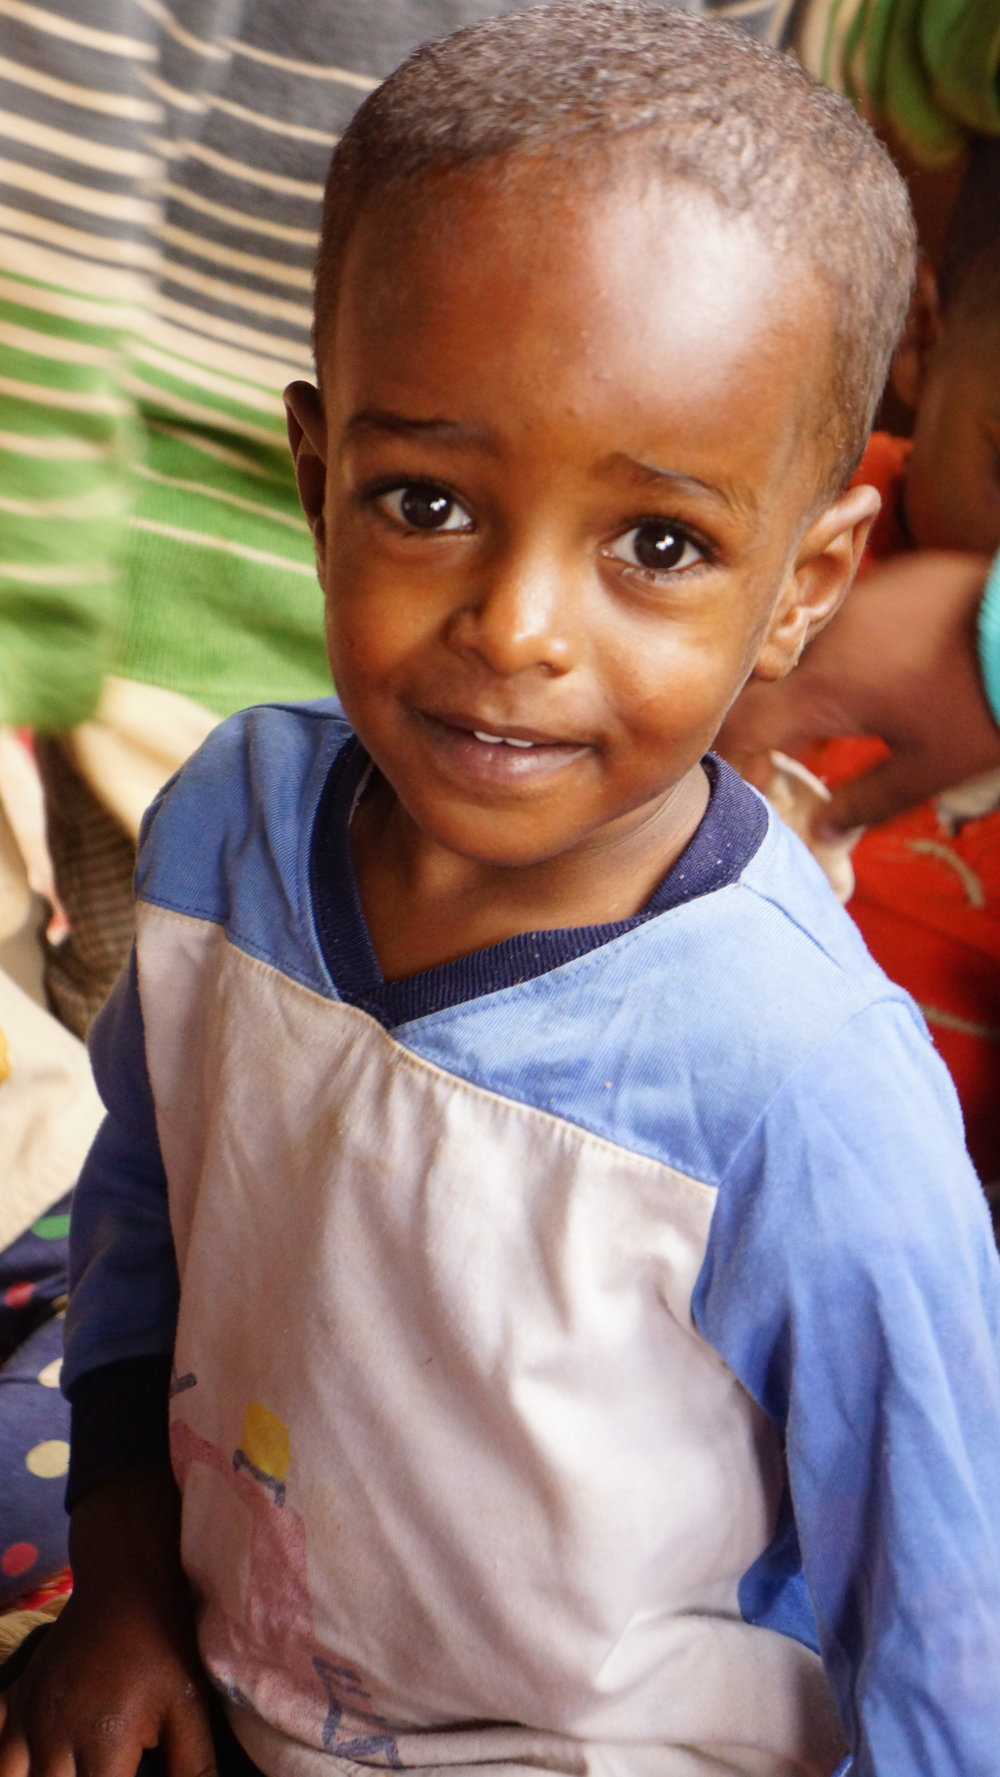 Mhiratu   Mhiratu came to us after his orphanage shut down due to lack of funding. He is a sweet, shy little boy, and is now walking and learning to talk,and becoming more outgoing every day. Mhiratu is generously sponsored by Ashlee Bond.